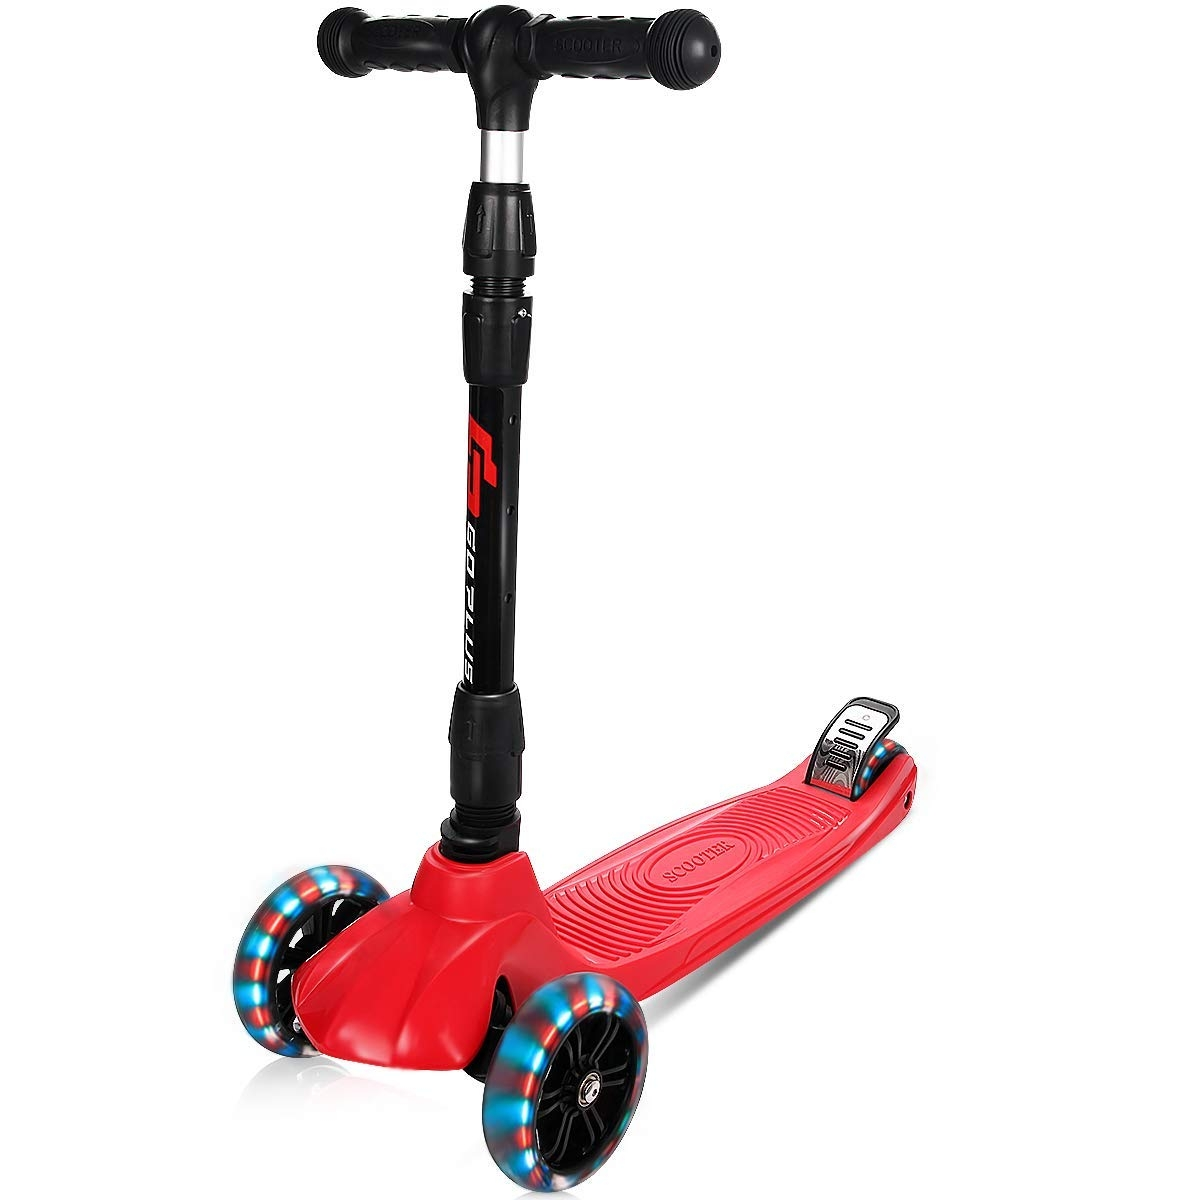 Folding Adjustable Height 3 LED Wheels Kids Kick Scooter